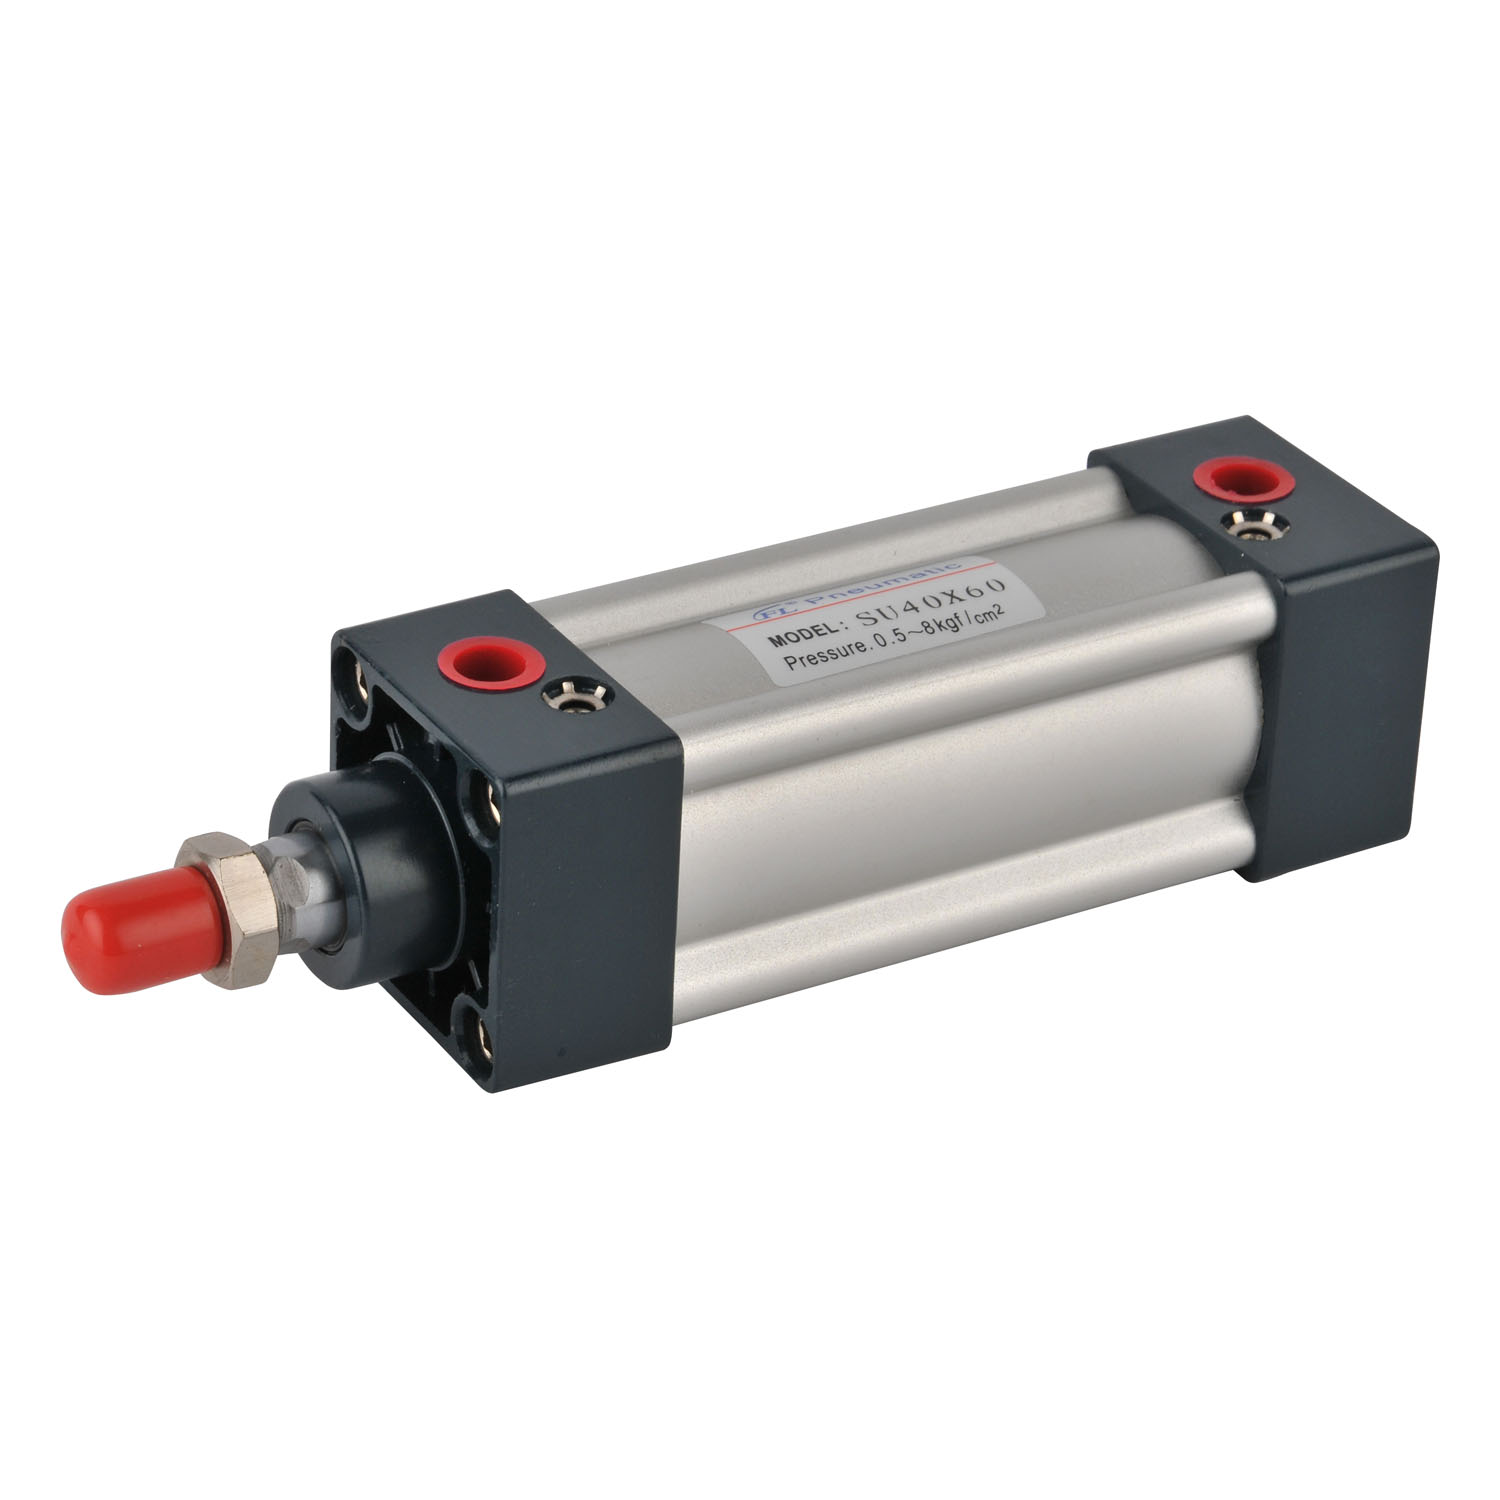 High press SU series guide air cylinder hidden pull rod type gas pneumatic cylinder kit